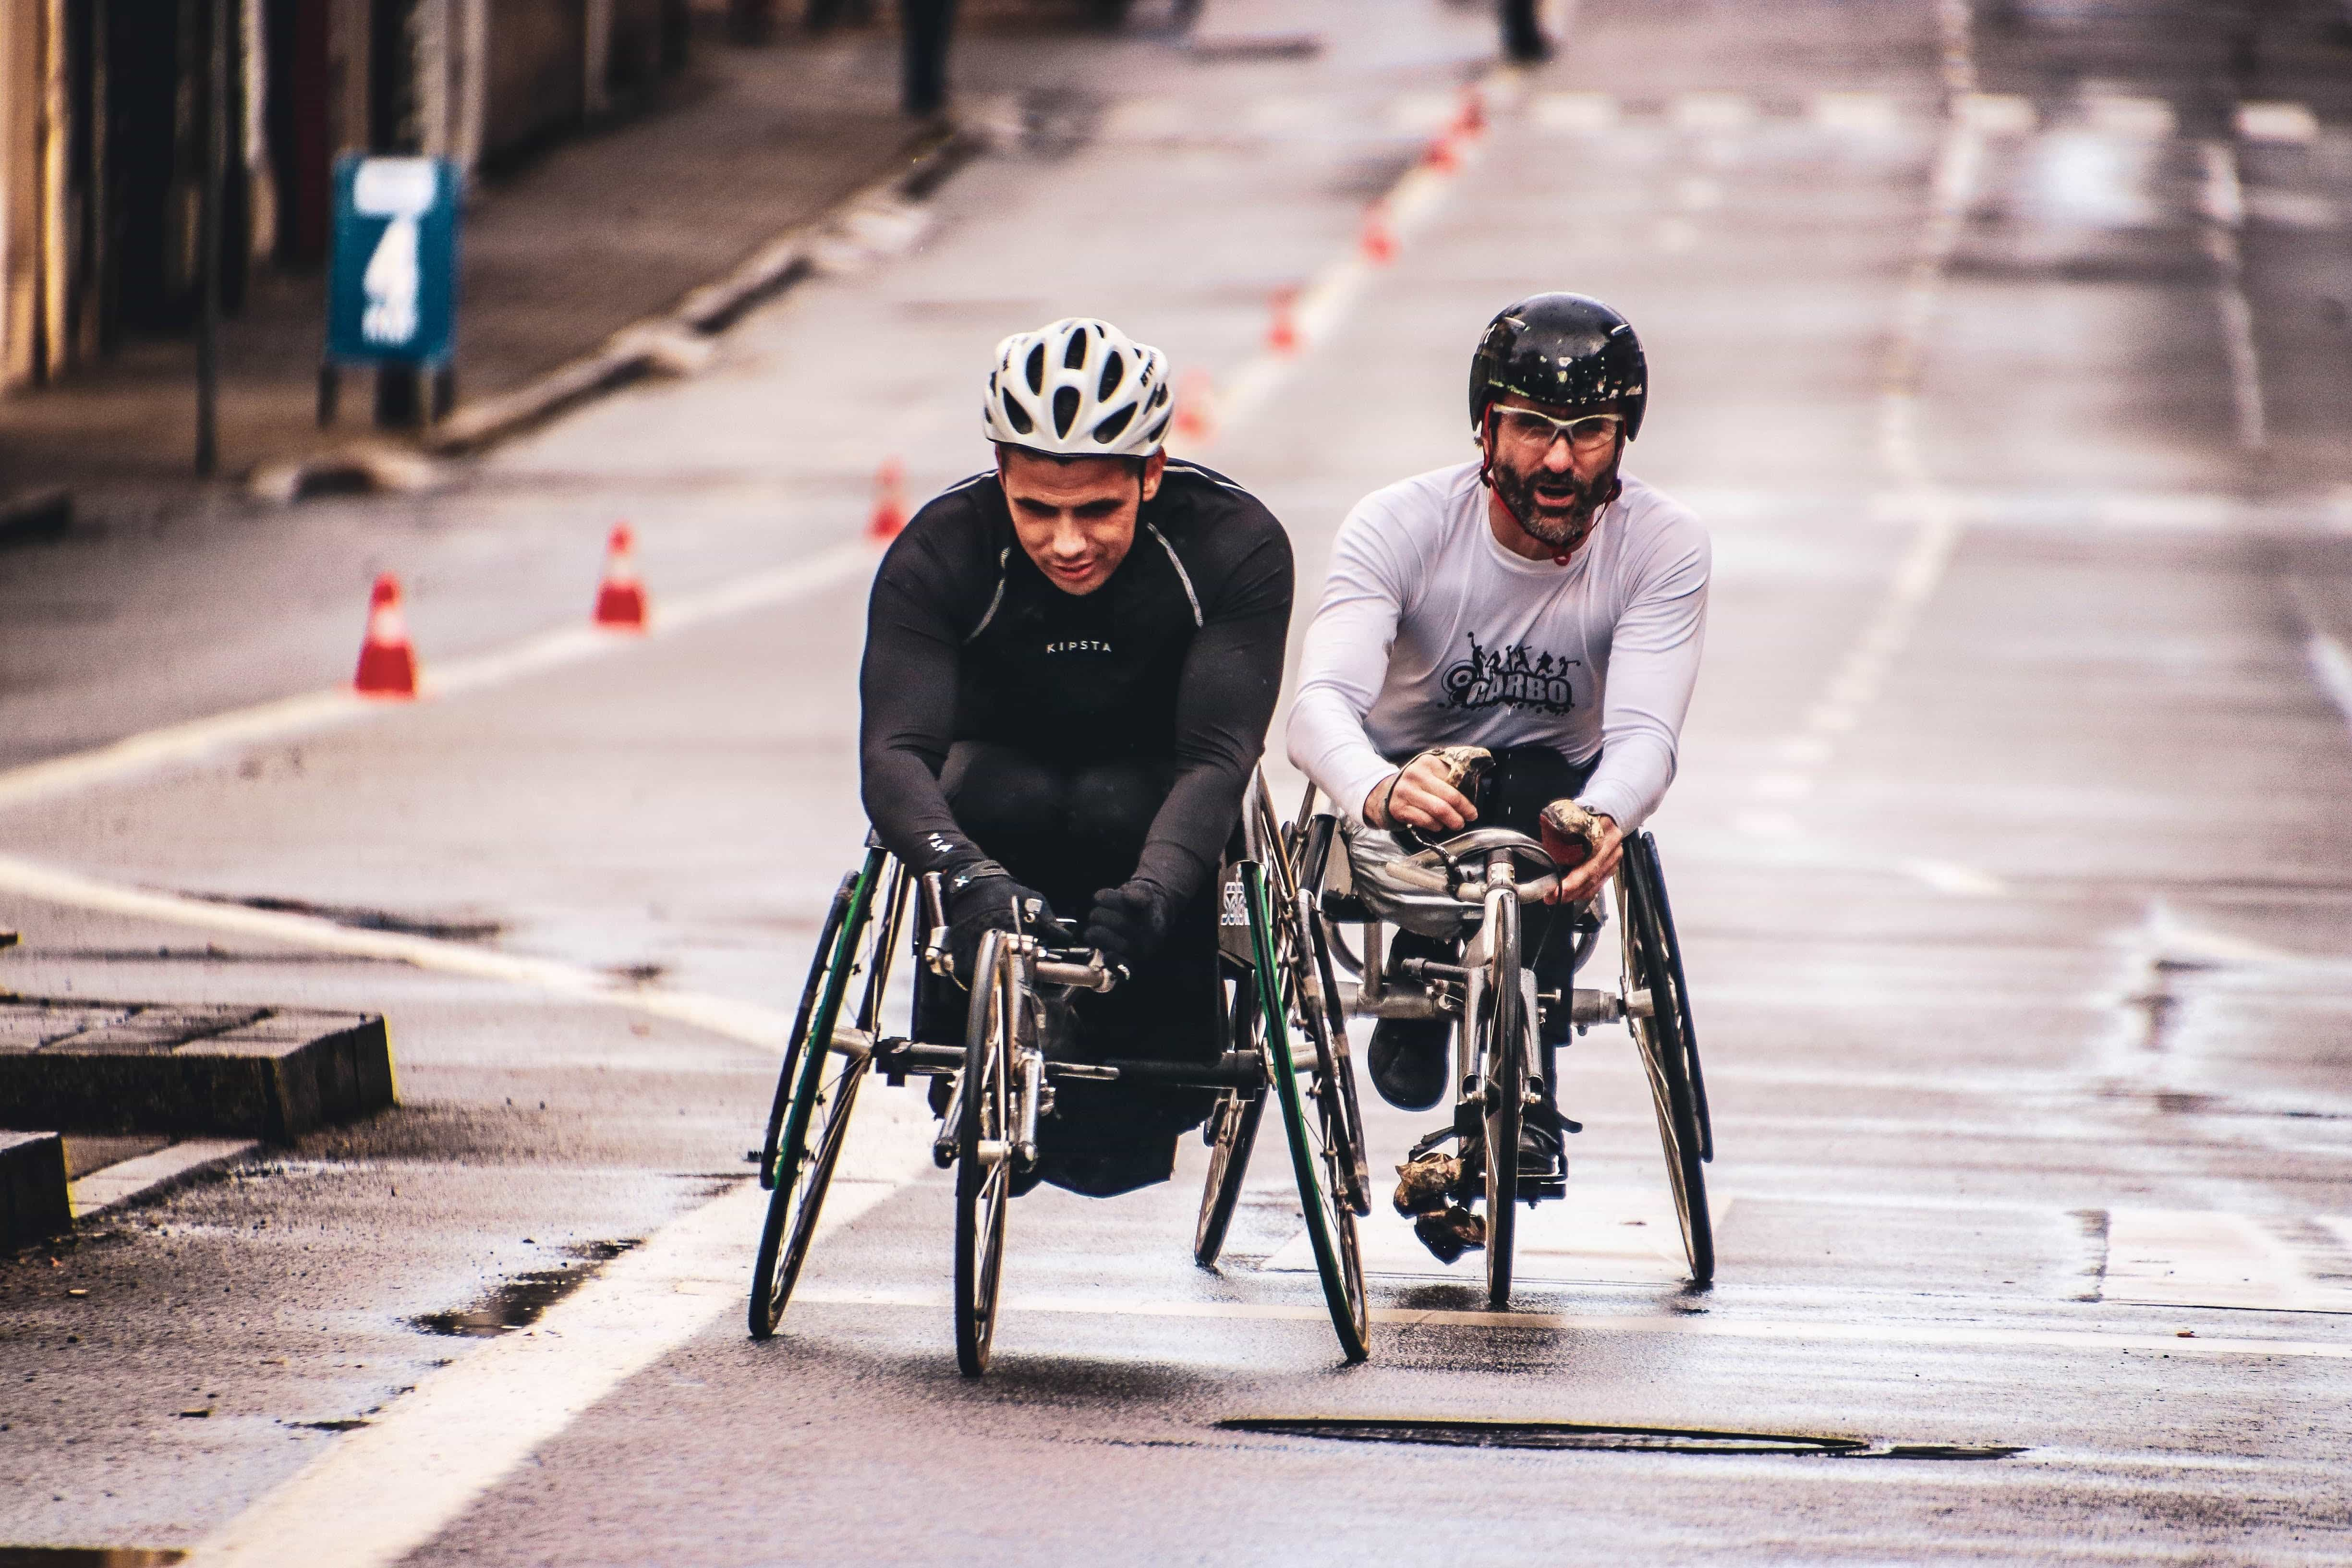 action-daylight-disability-1568804